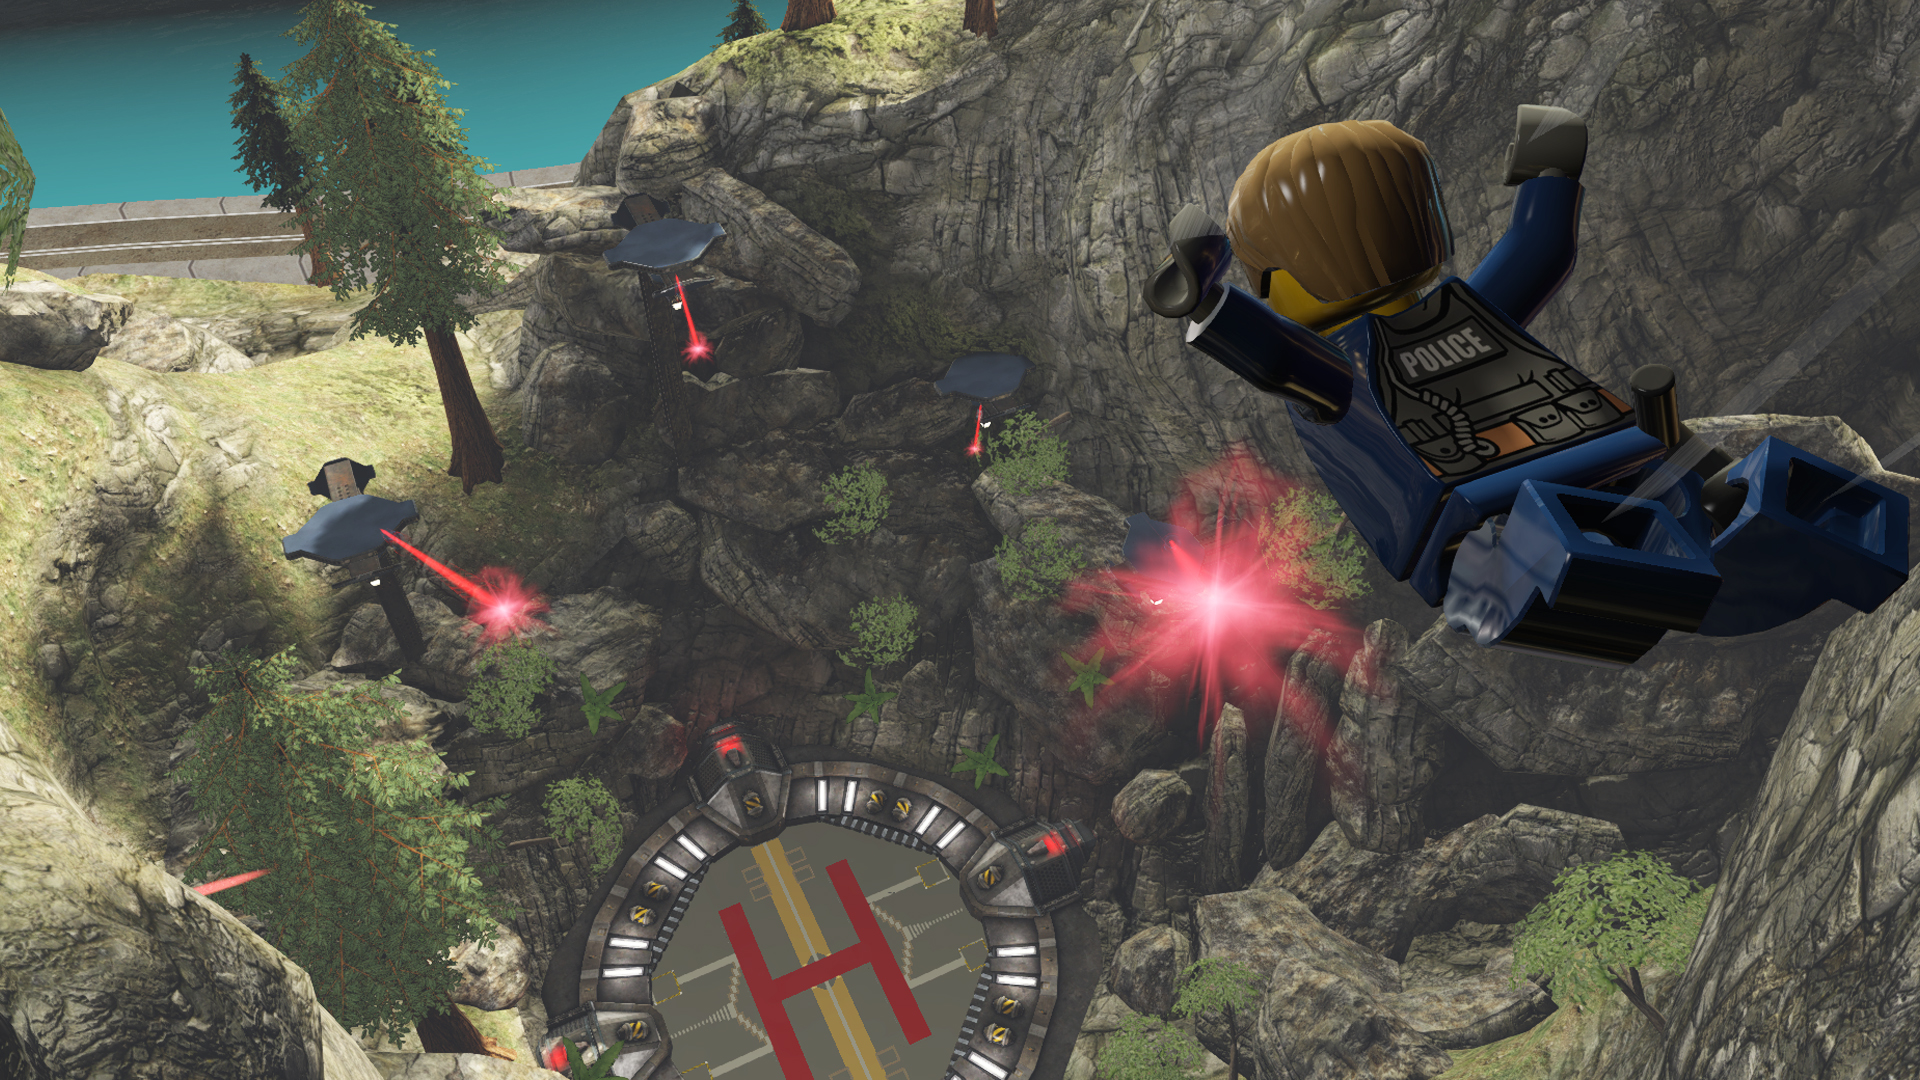 Lego City Undercover Screenshot 1